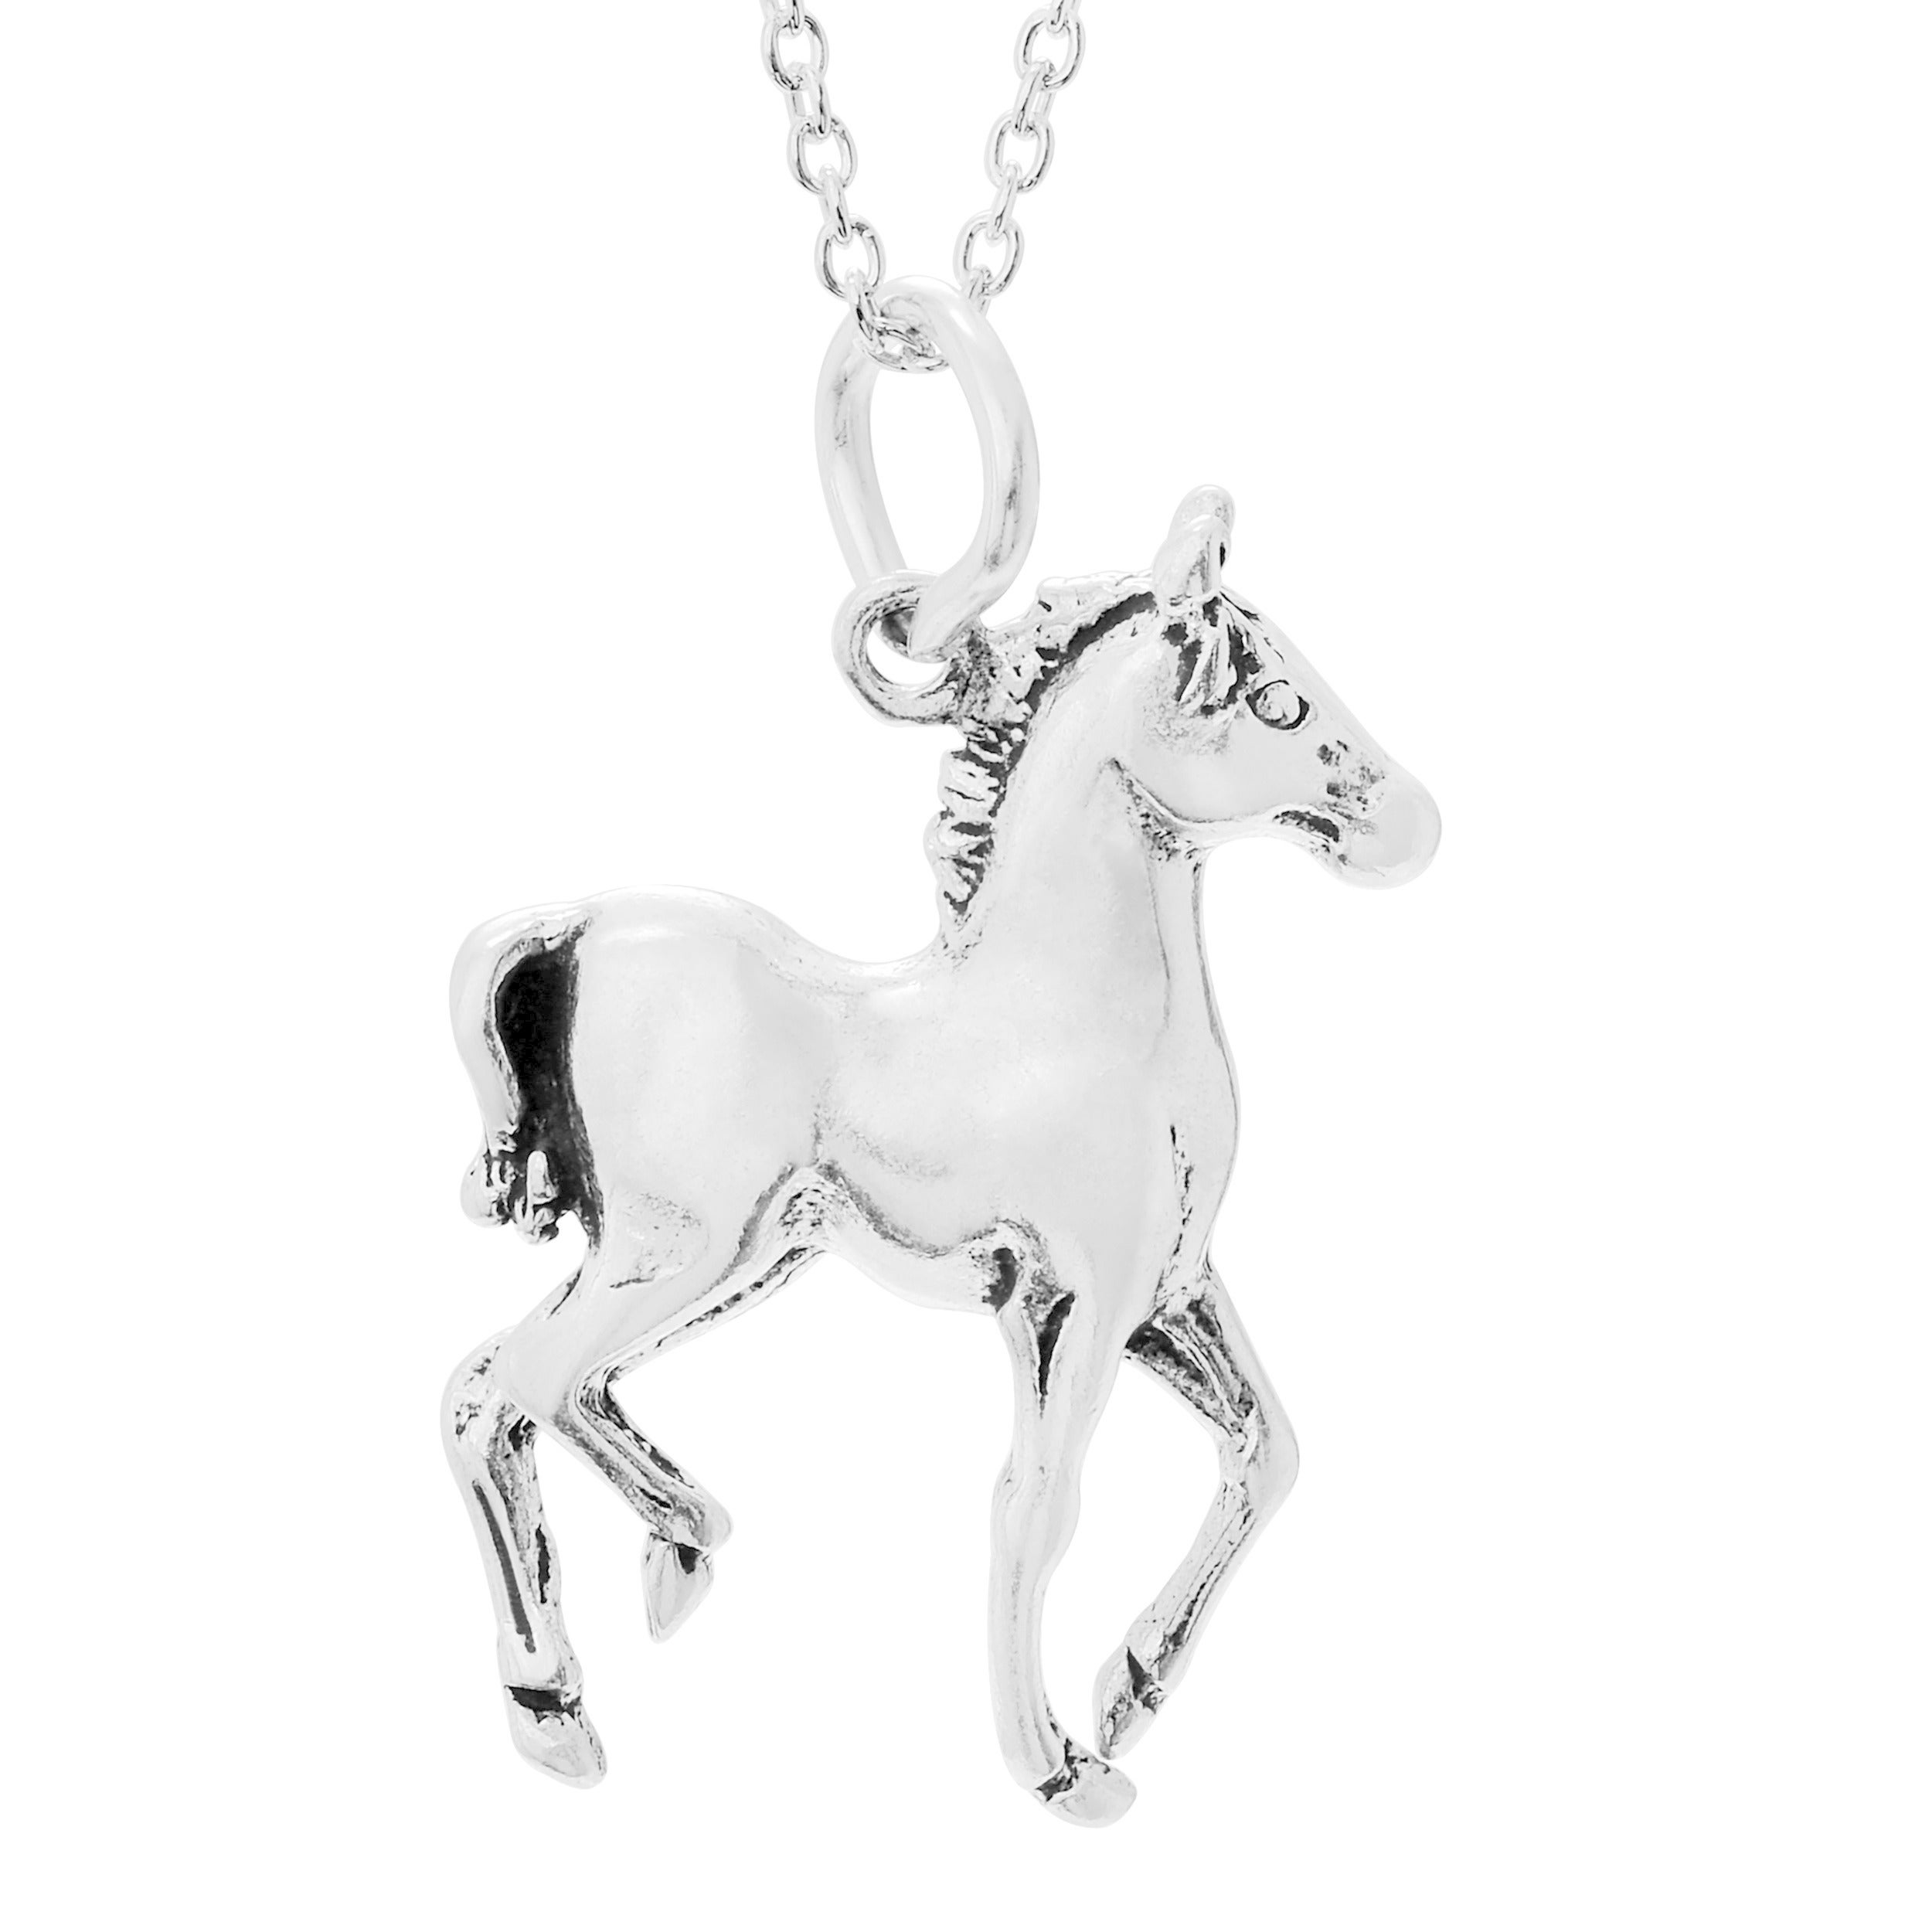 the p personalized e by necklace right distinctlyivy horse fixedclean up jewelry last in handstamped name